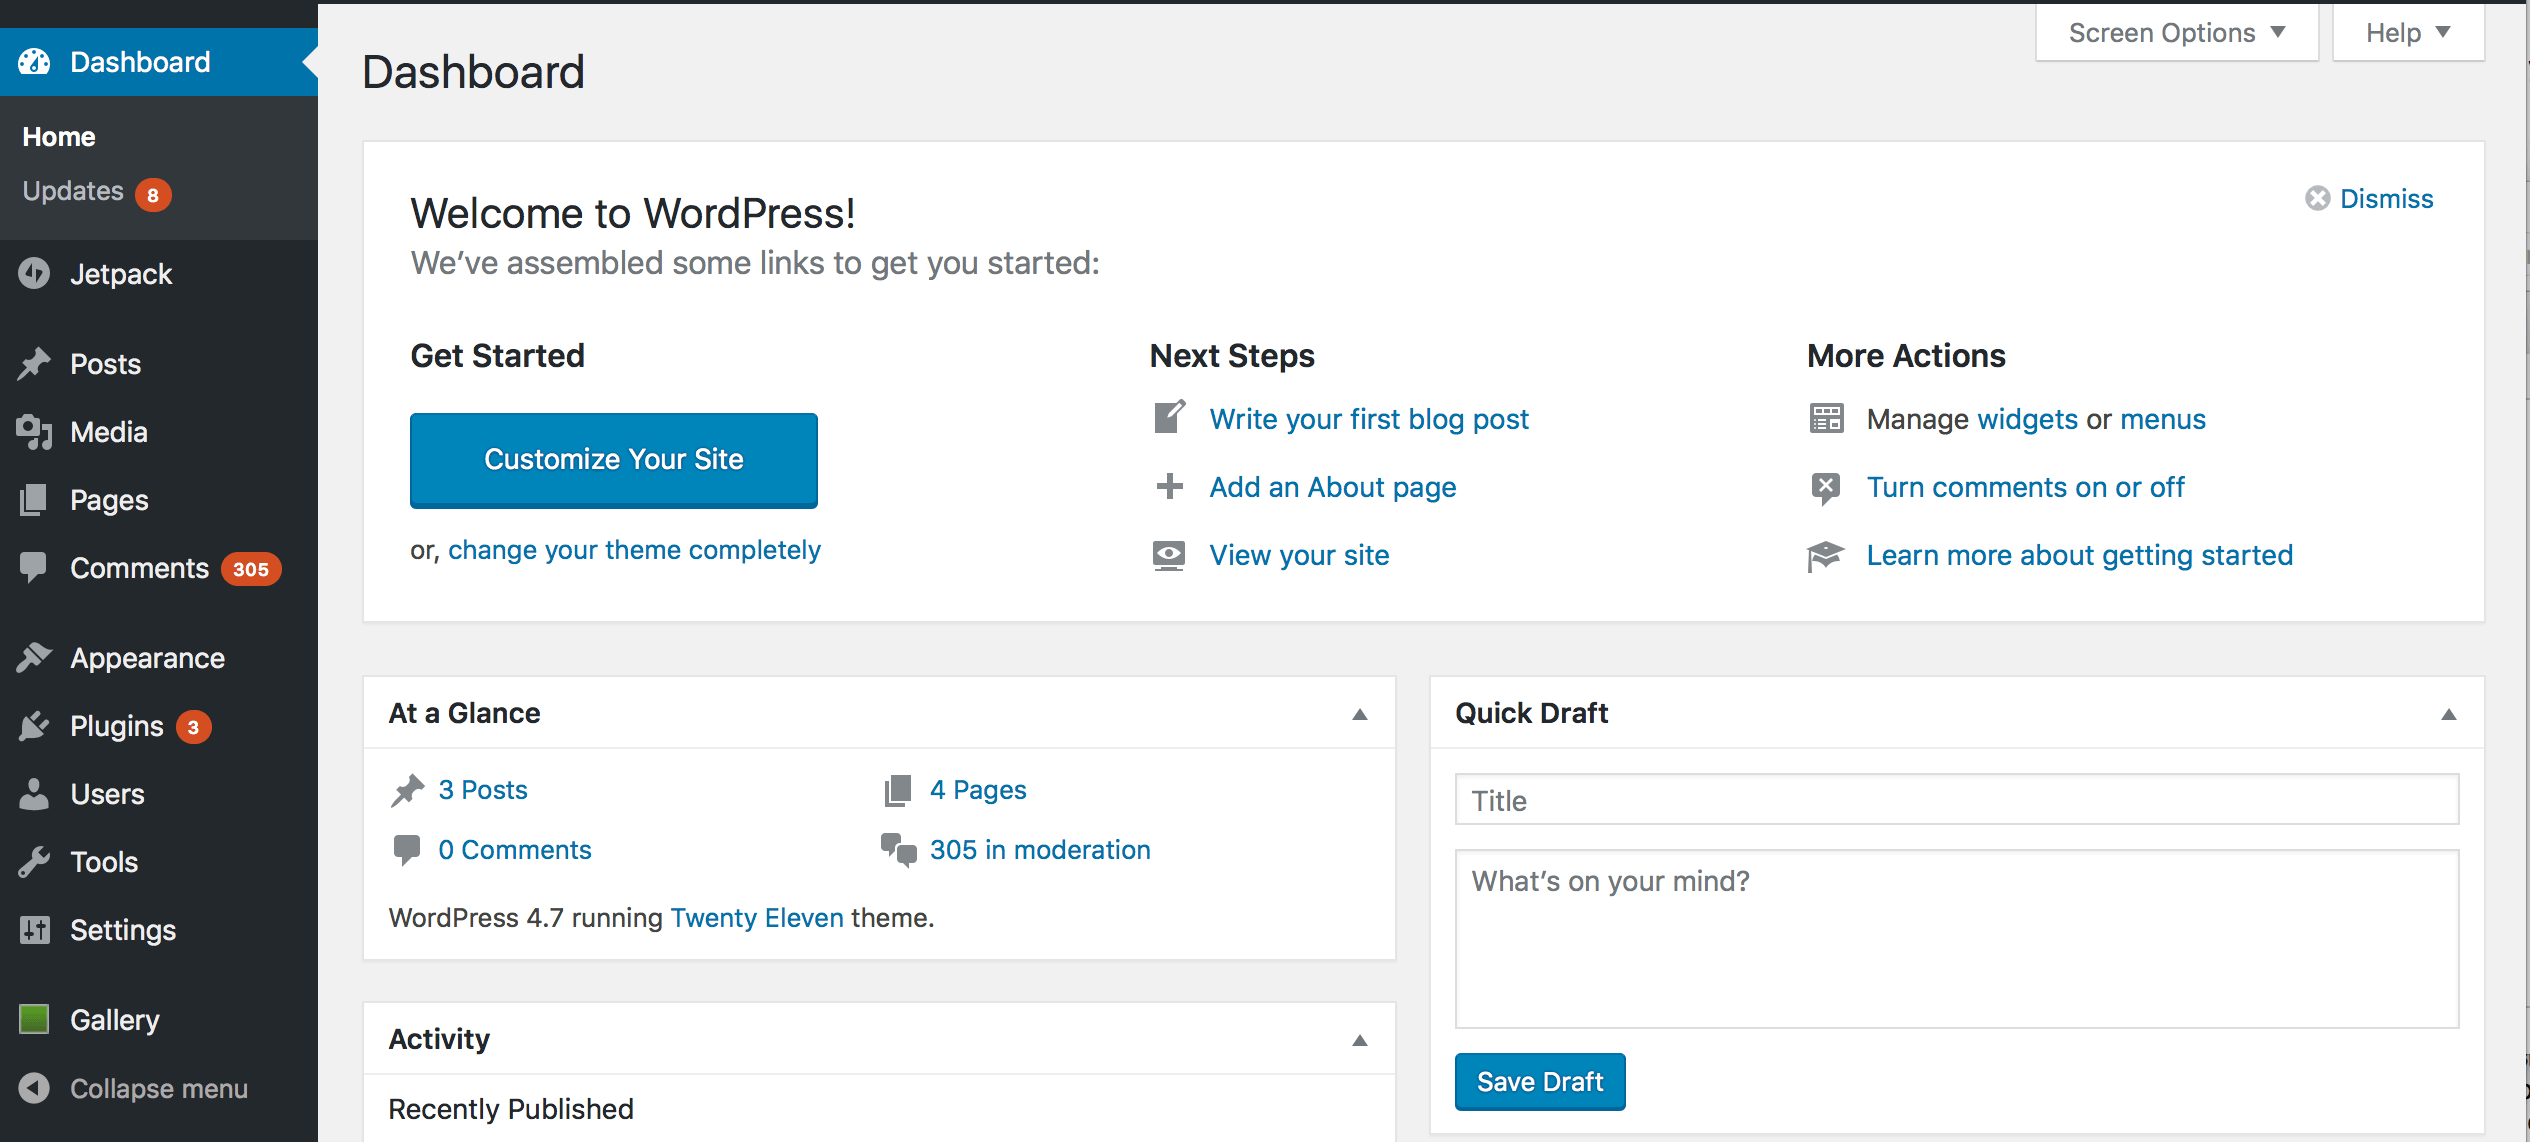 A view of both main areas of the WordPress Dashboard